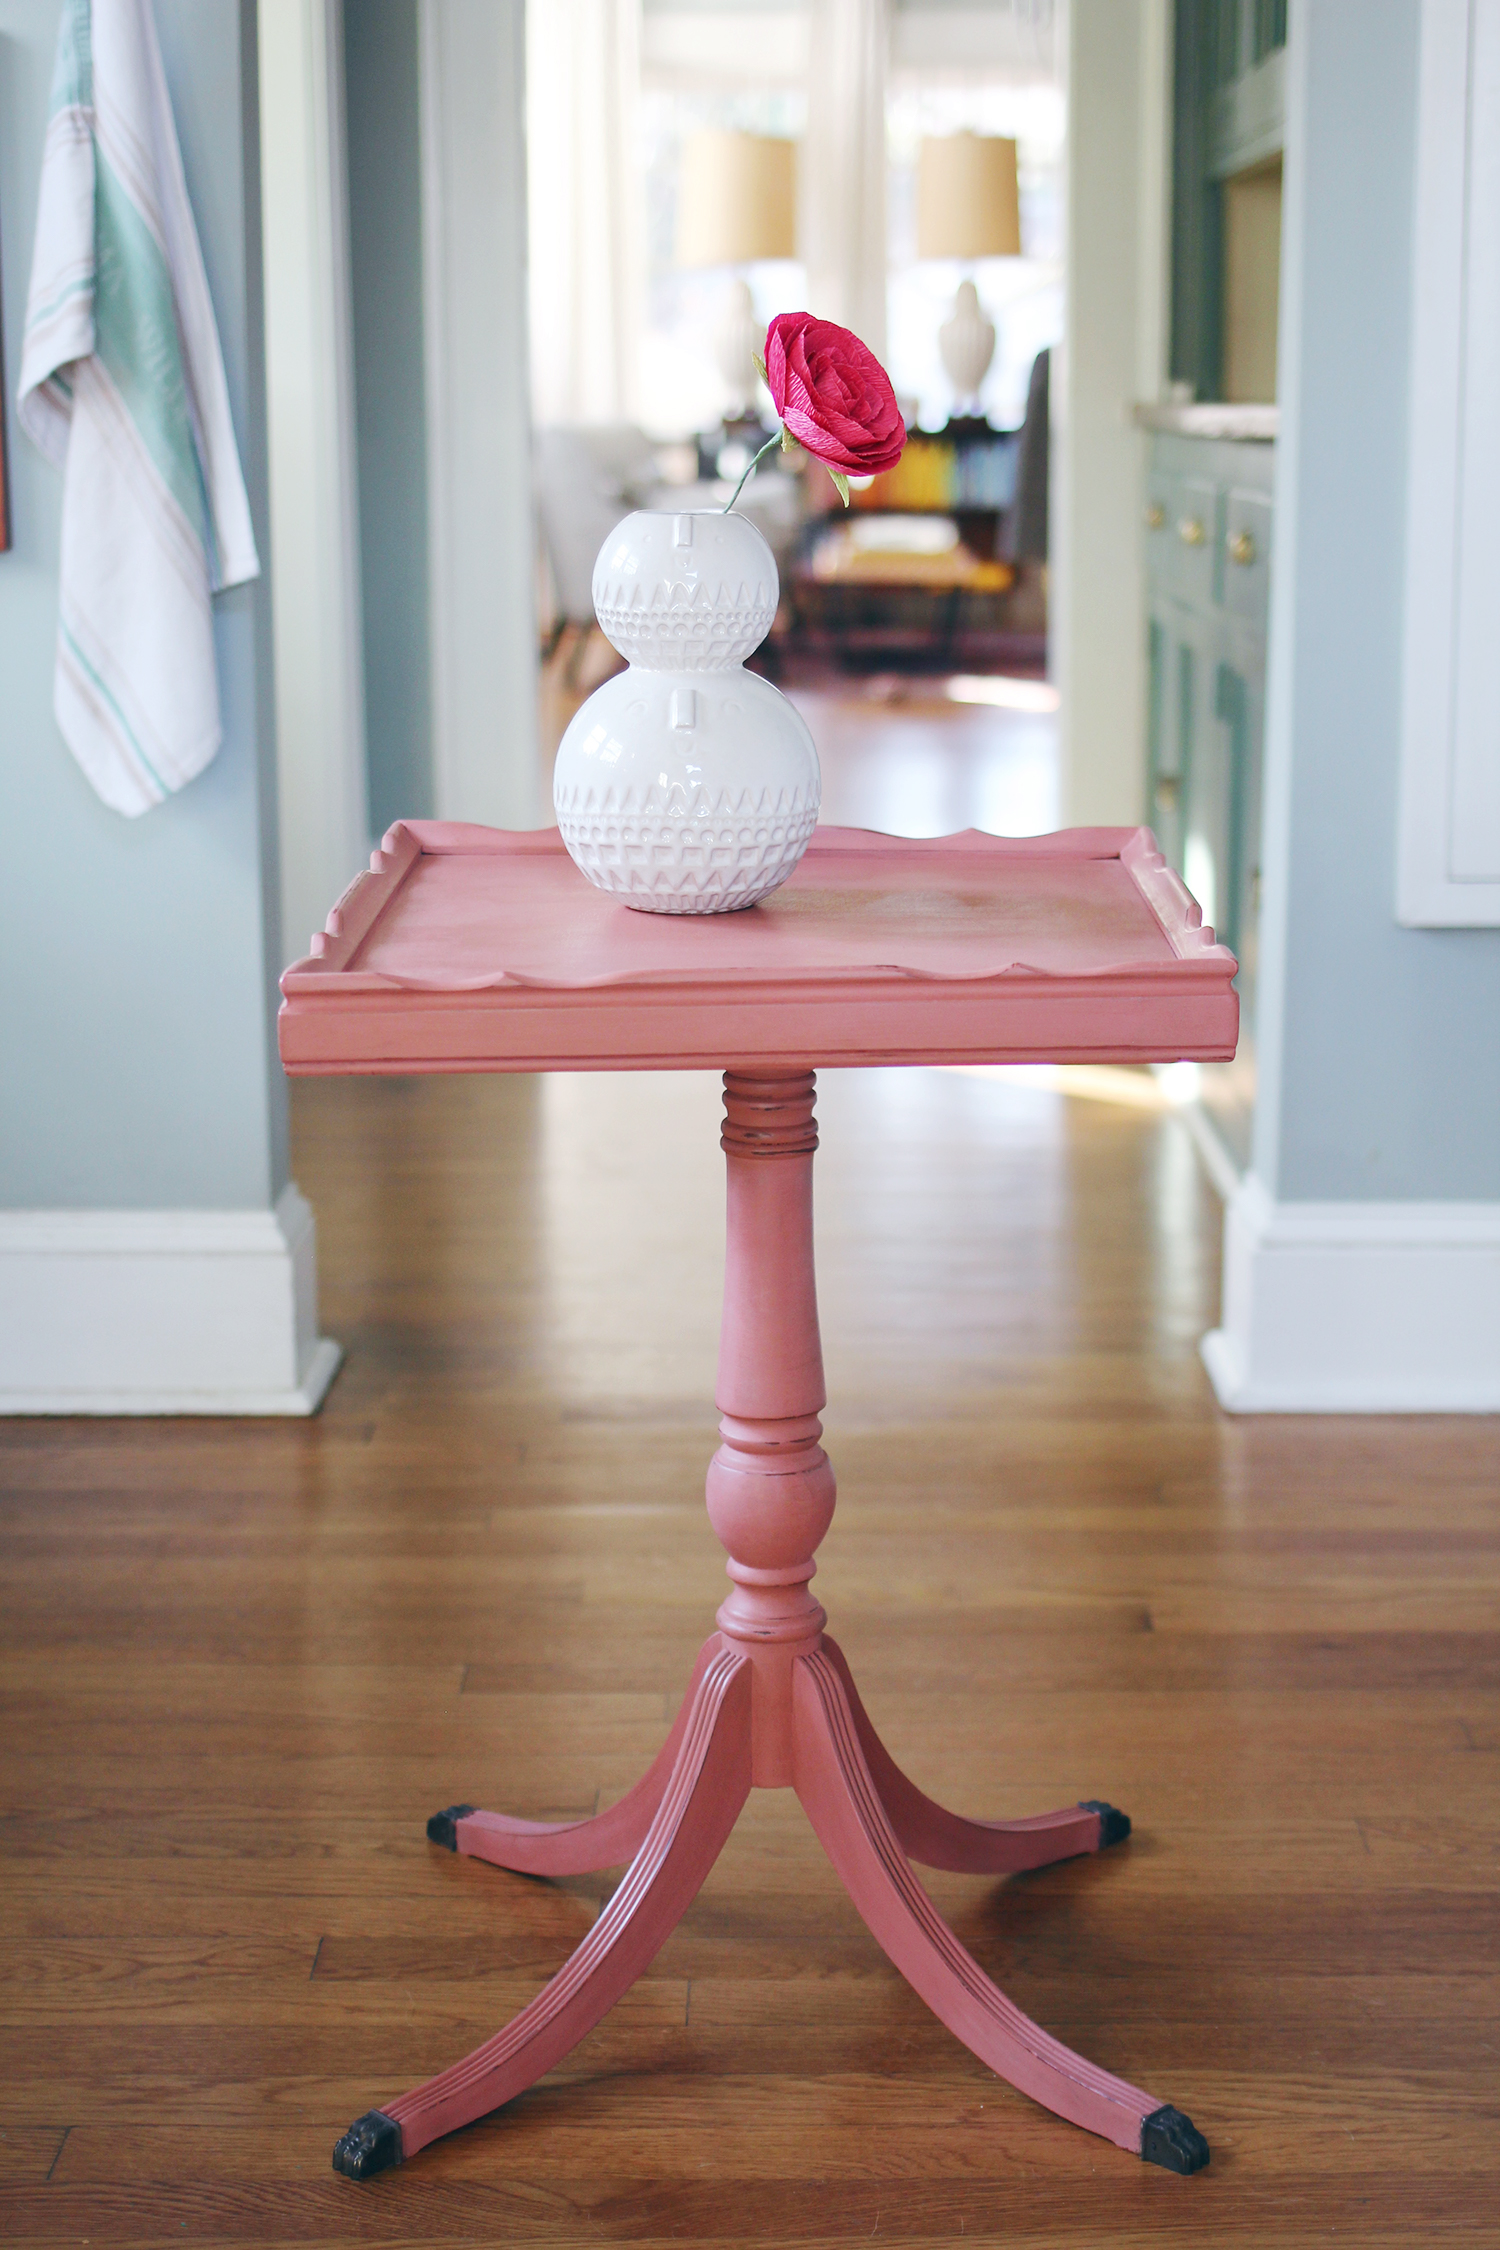 jo-torrijos-a-simpler-design-annie-sloan-chalk-paint-scandinavian-pink-table-atlanta-painted-furniture-5.jpg